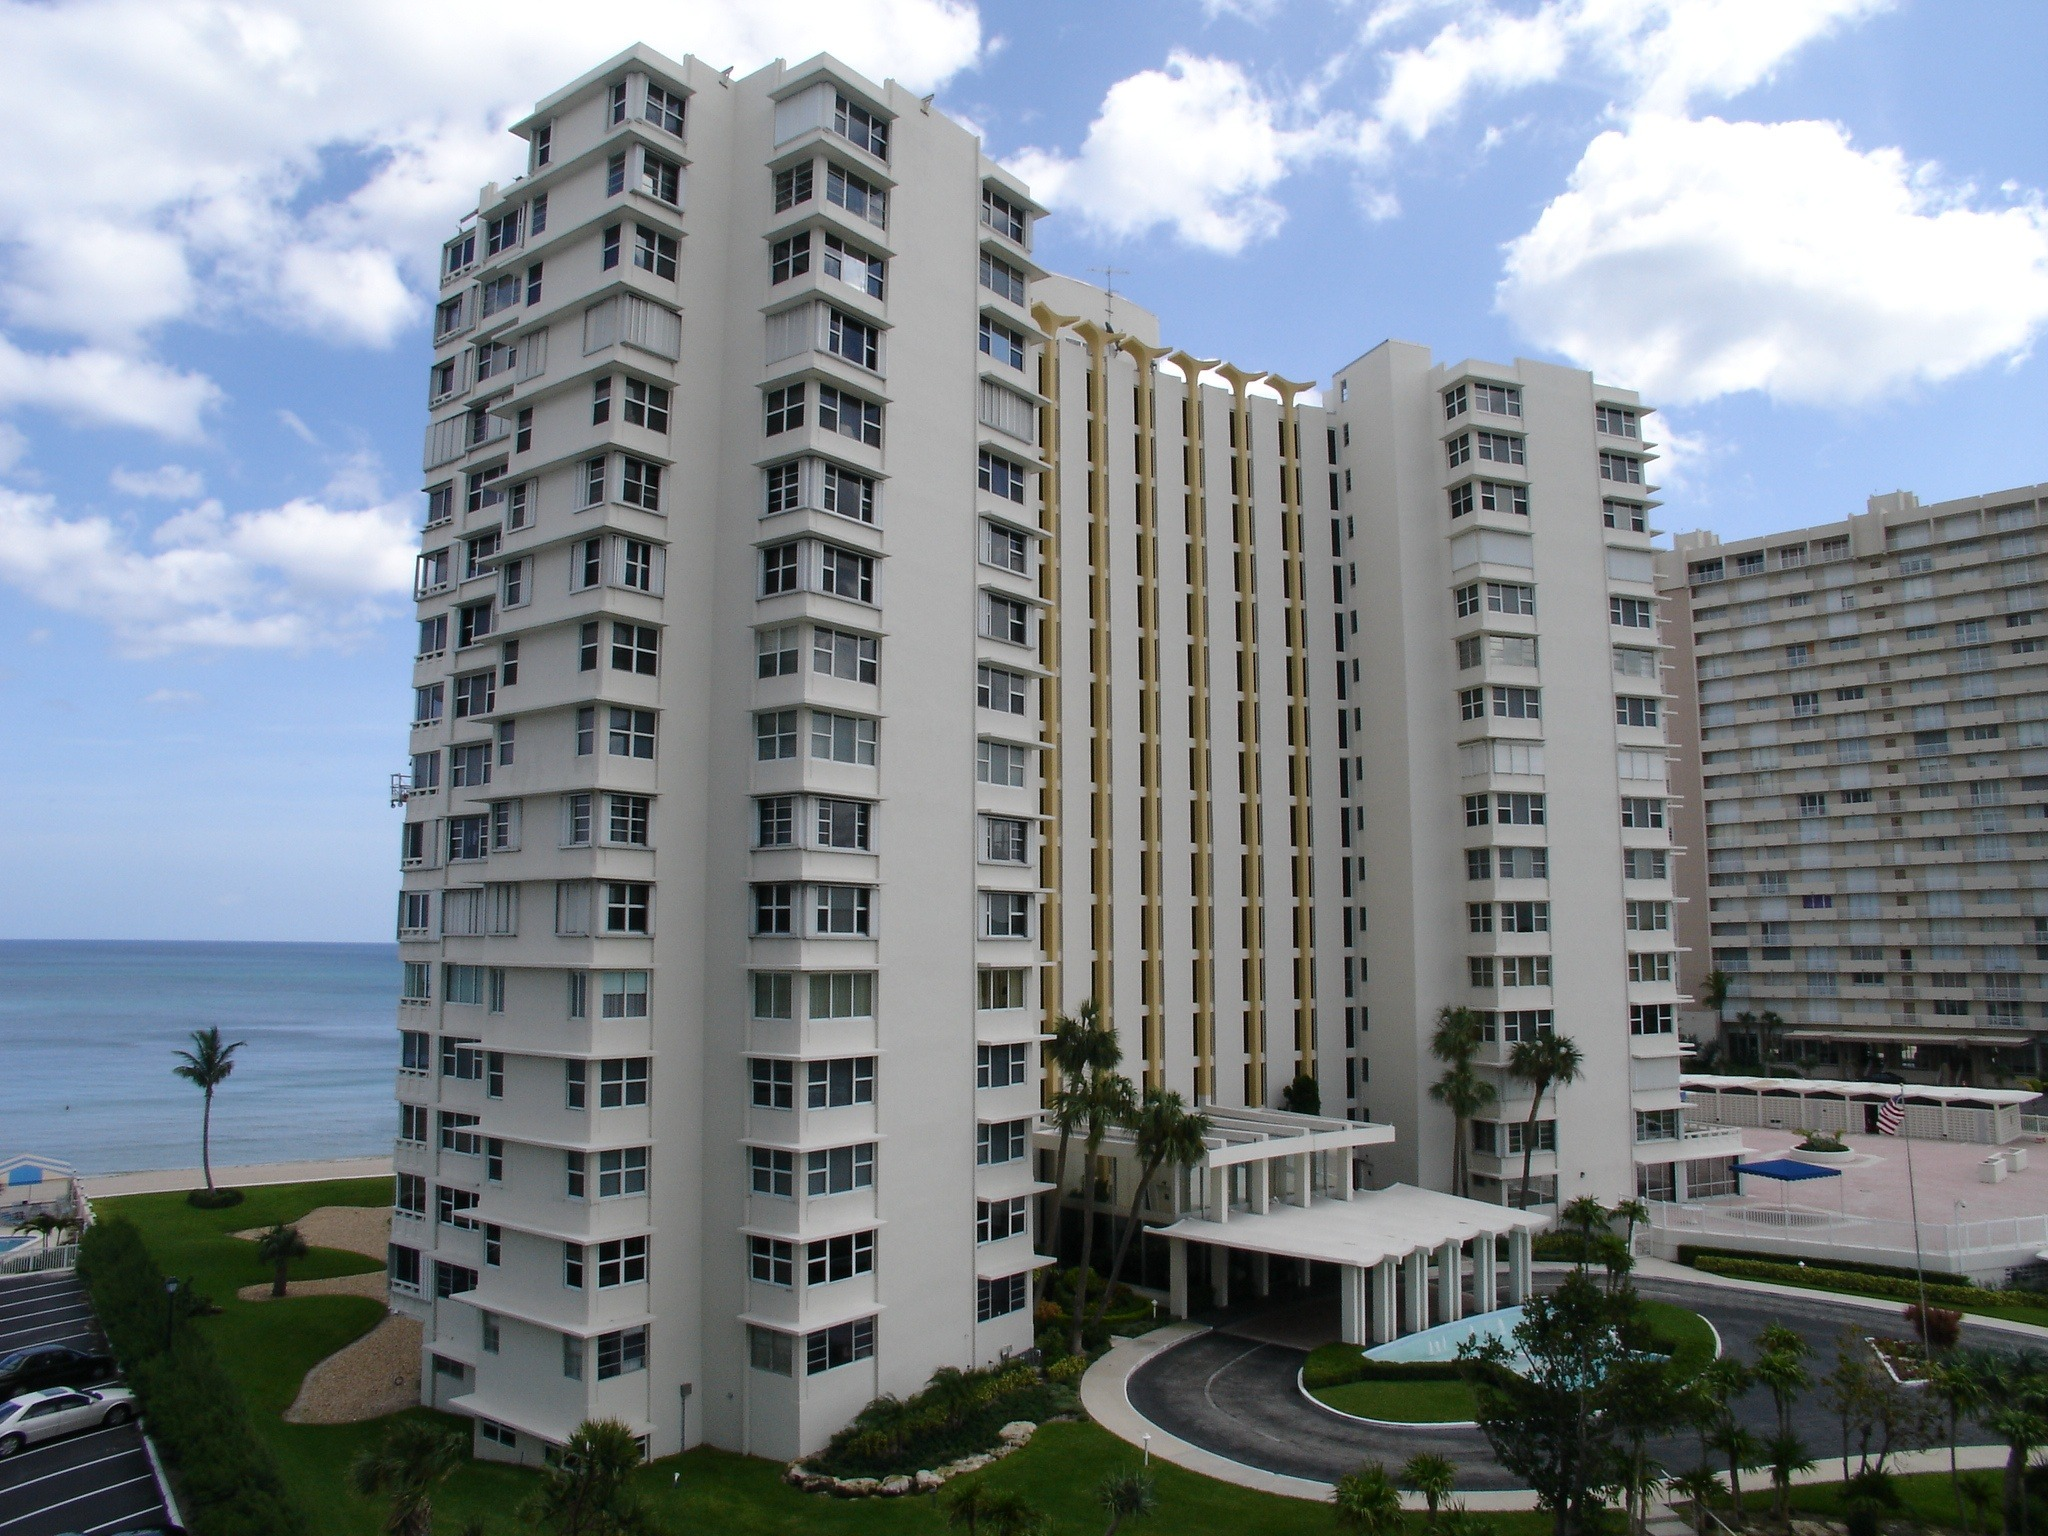 Fountainhead - Lauderdale-by-the-Sea, FL Condos for Sale